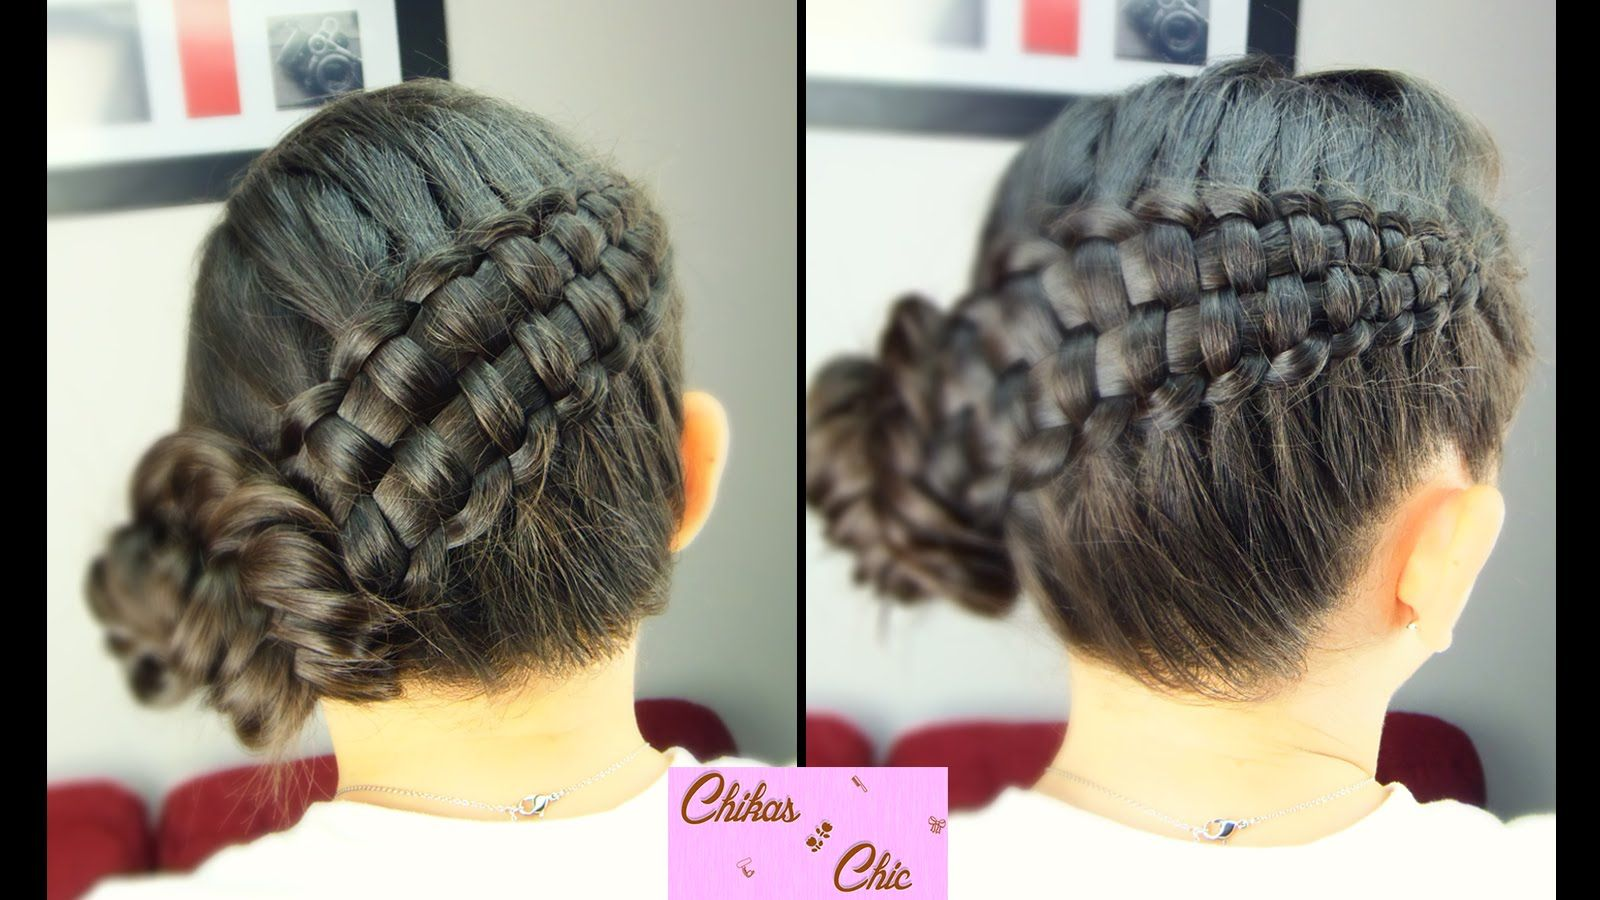 Double braid updo zipper braid updo braided hairstyles cute